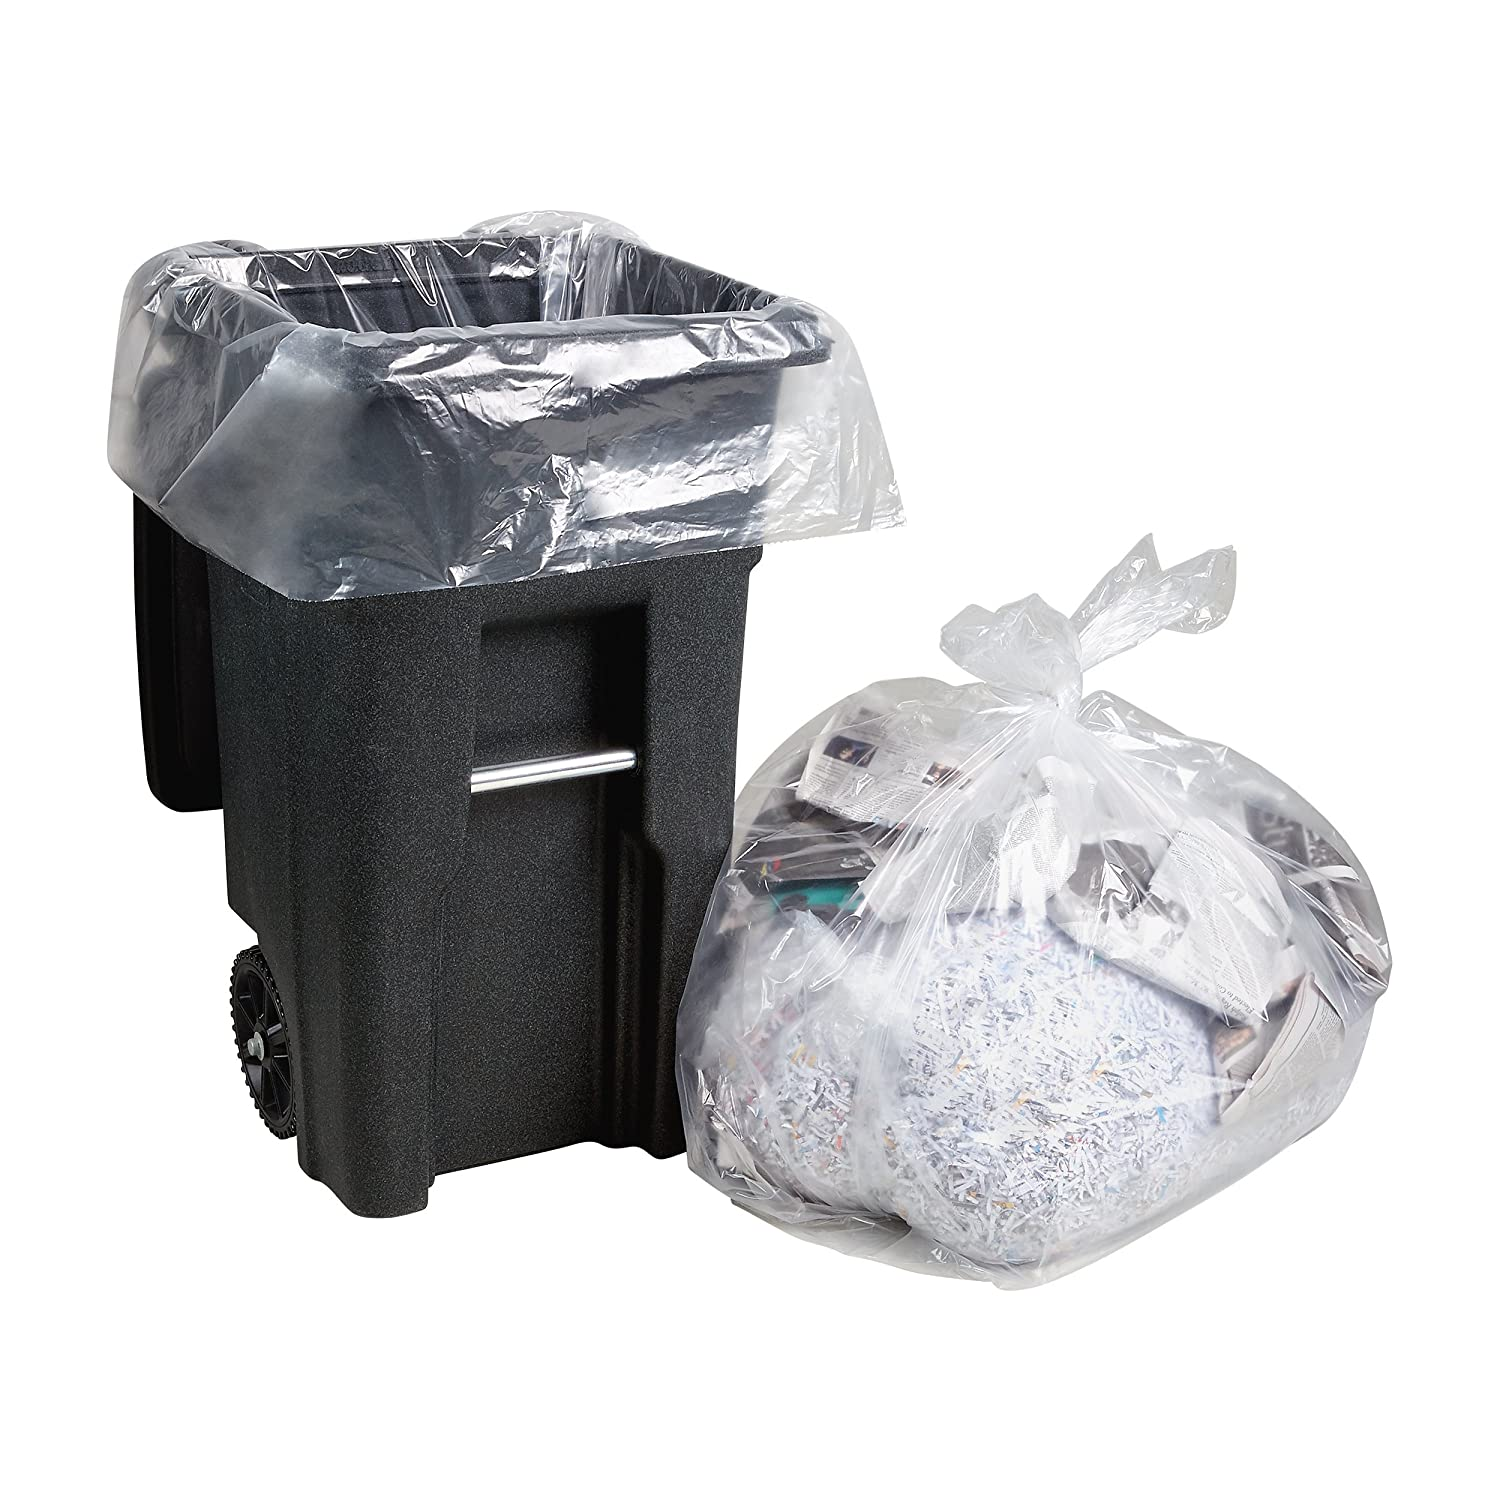 95-100 Gallon, (50/Count Wholesale) Large Clear Plastic Recycling Trash Bags, (Clear)